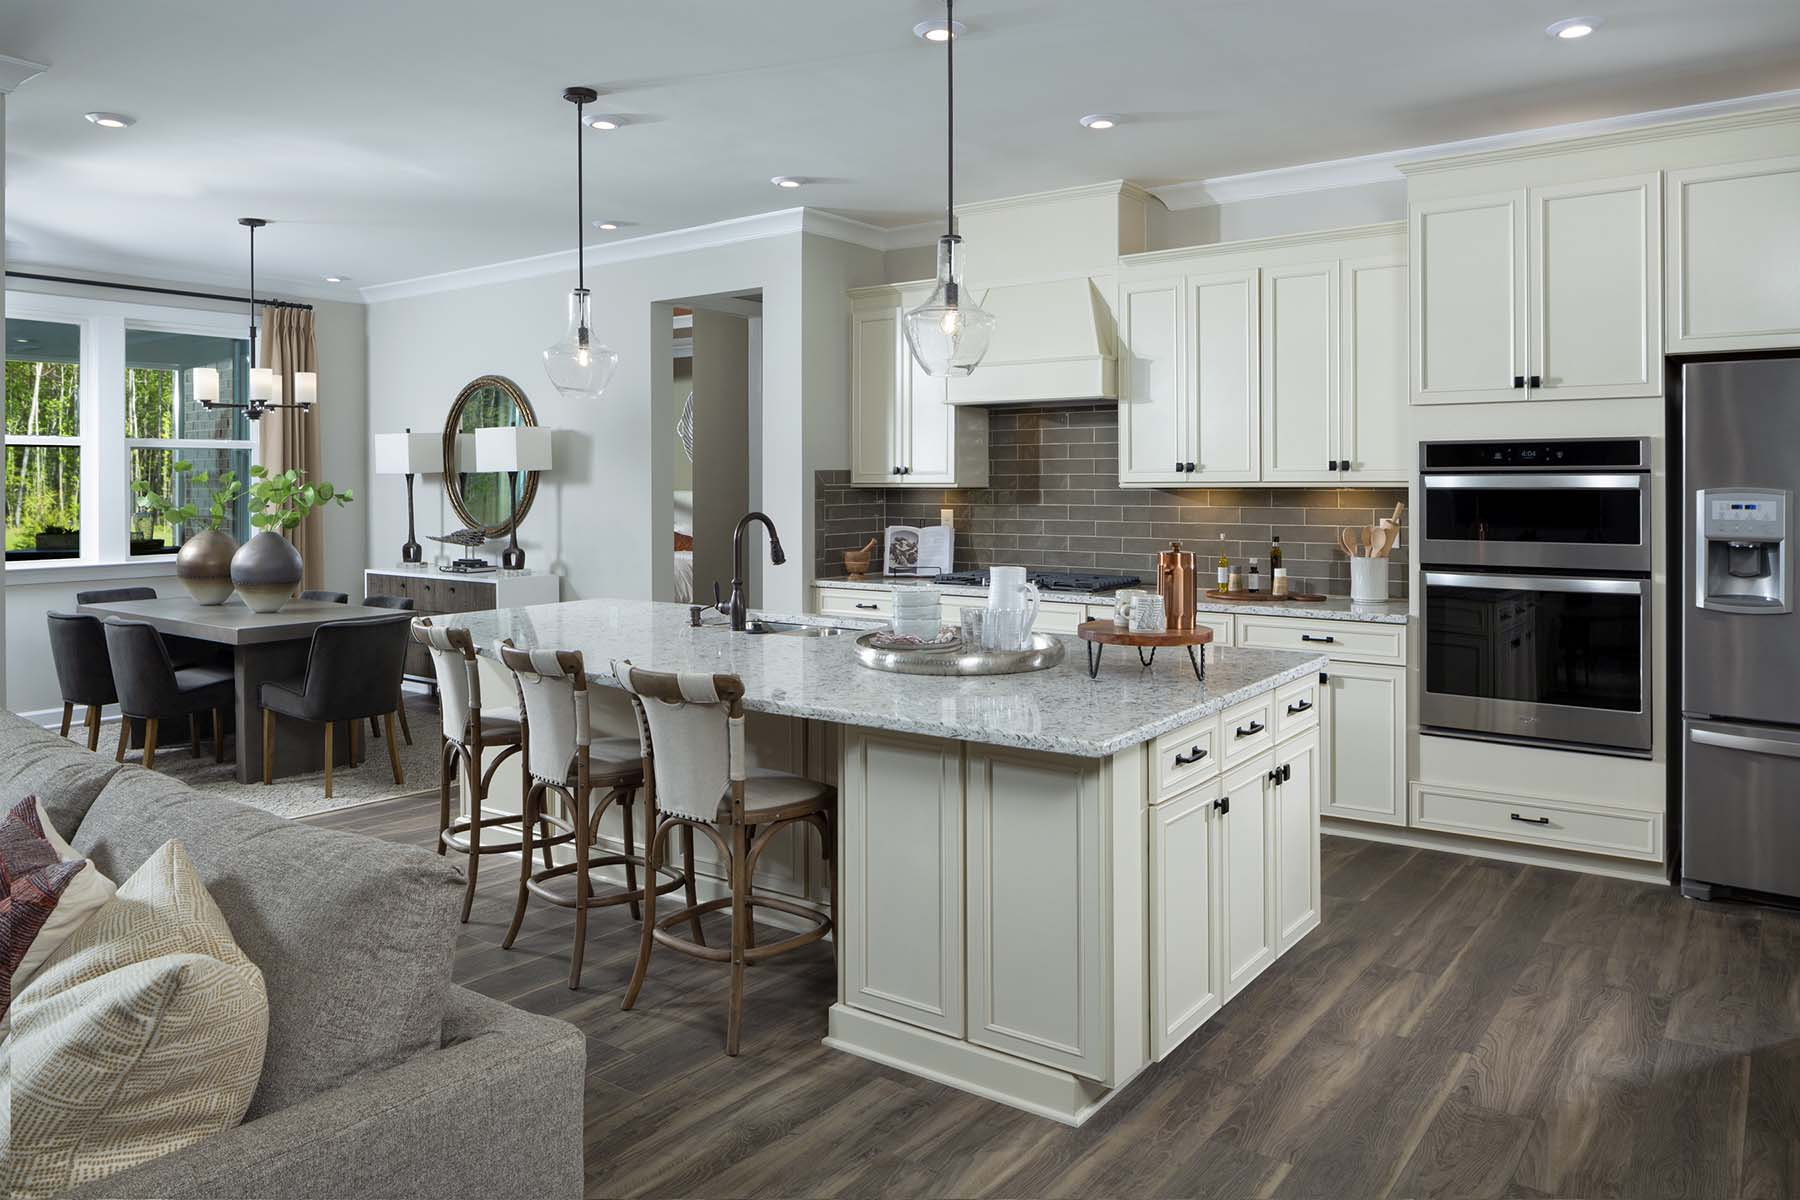 Armstrong Plan Kitchen at Sonata at Mint Hill in Mint Hill North Carolina by Mattamy Homes